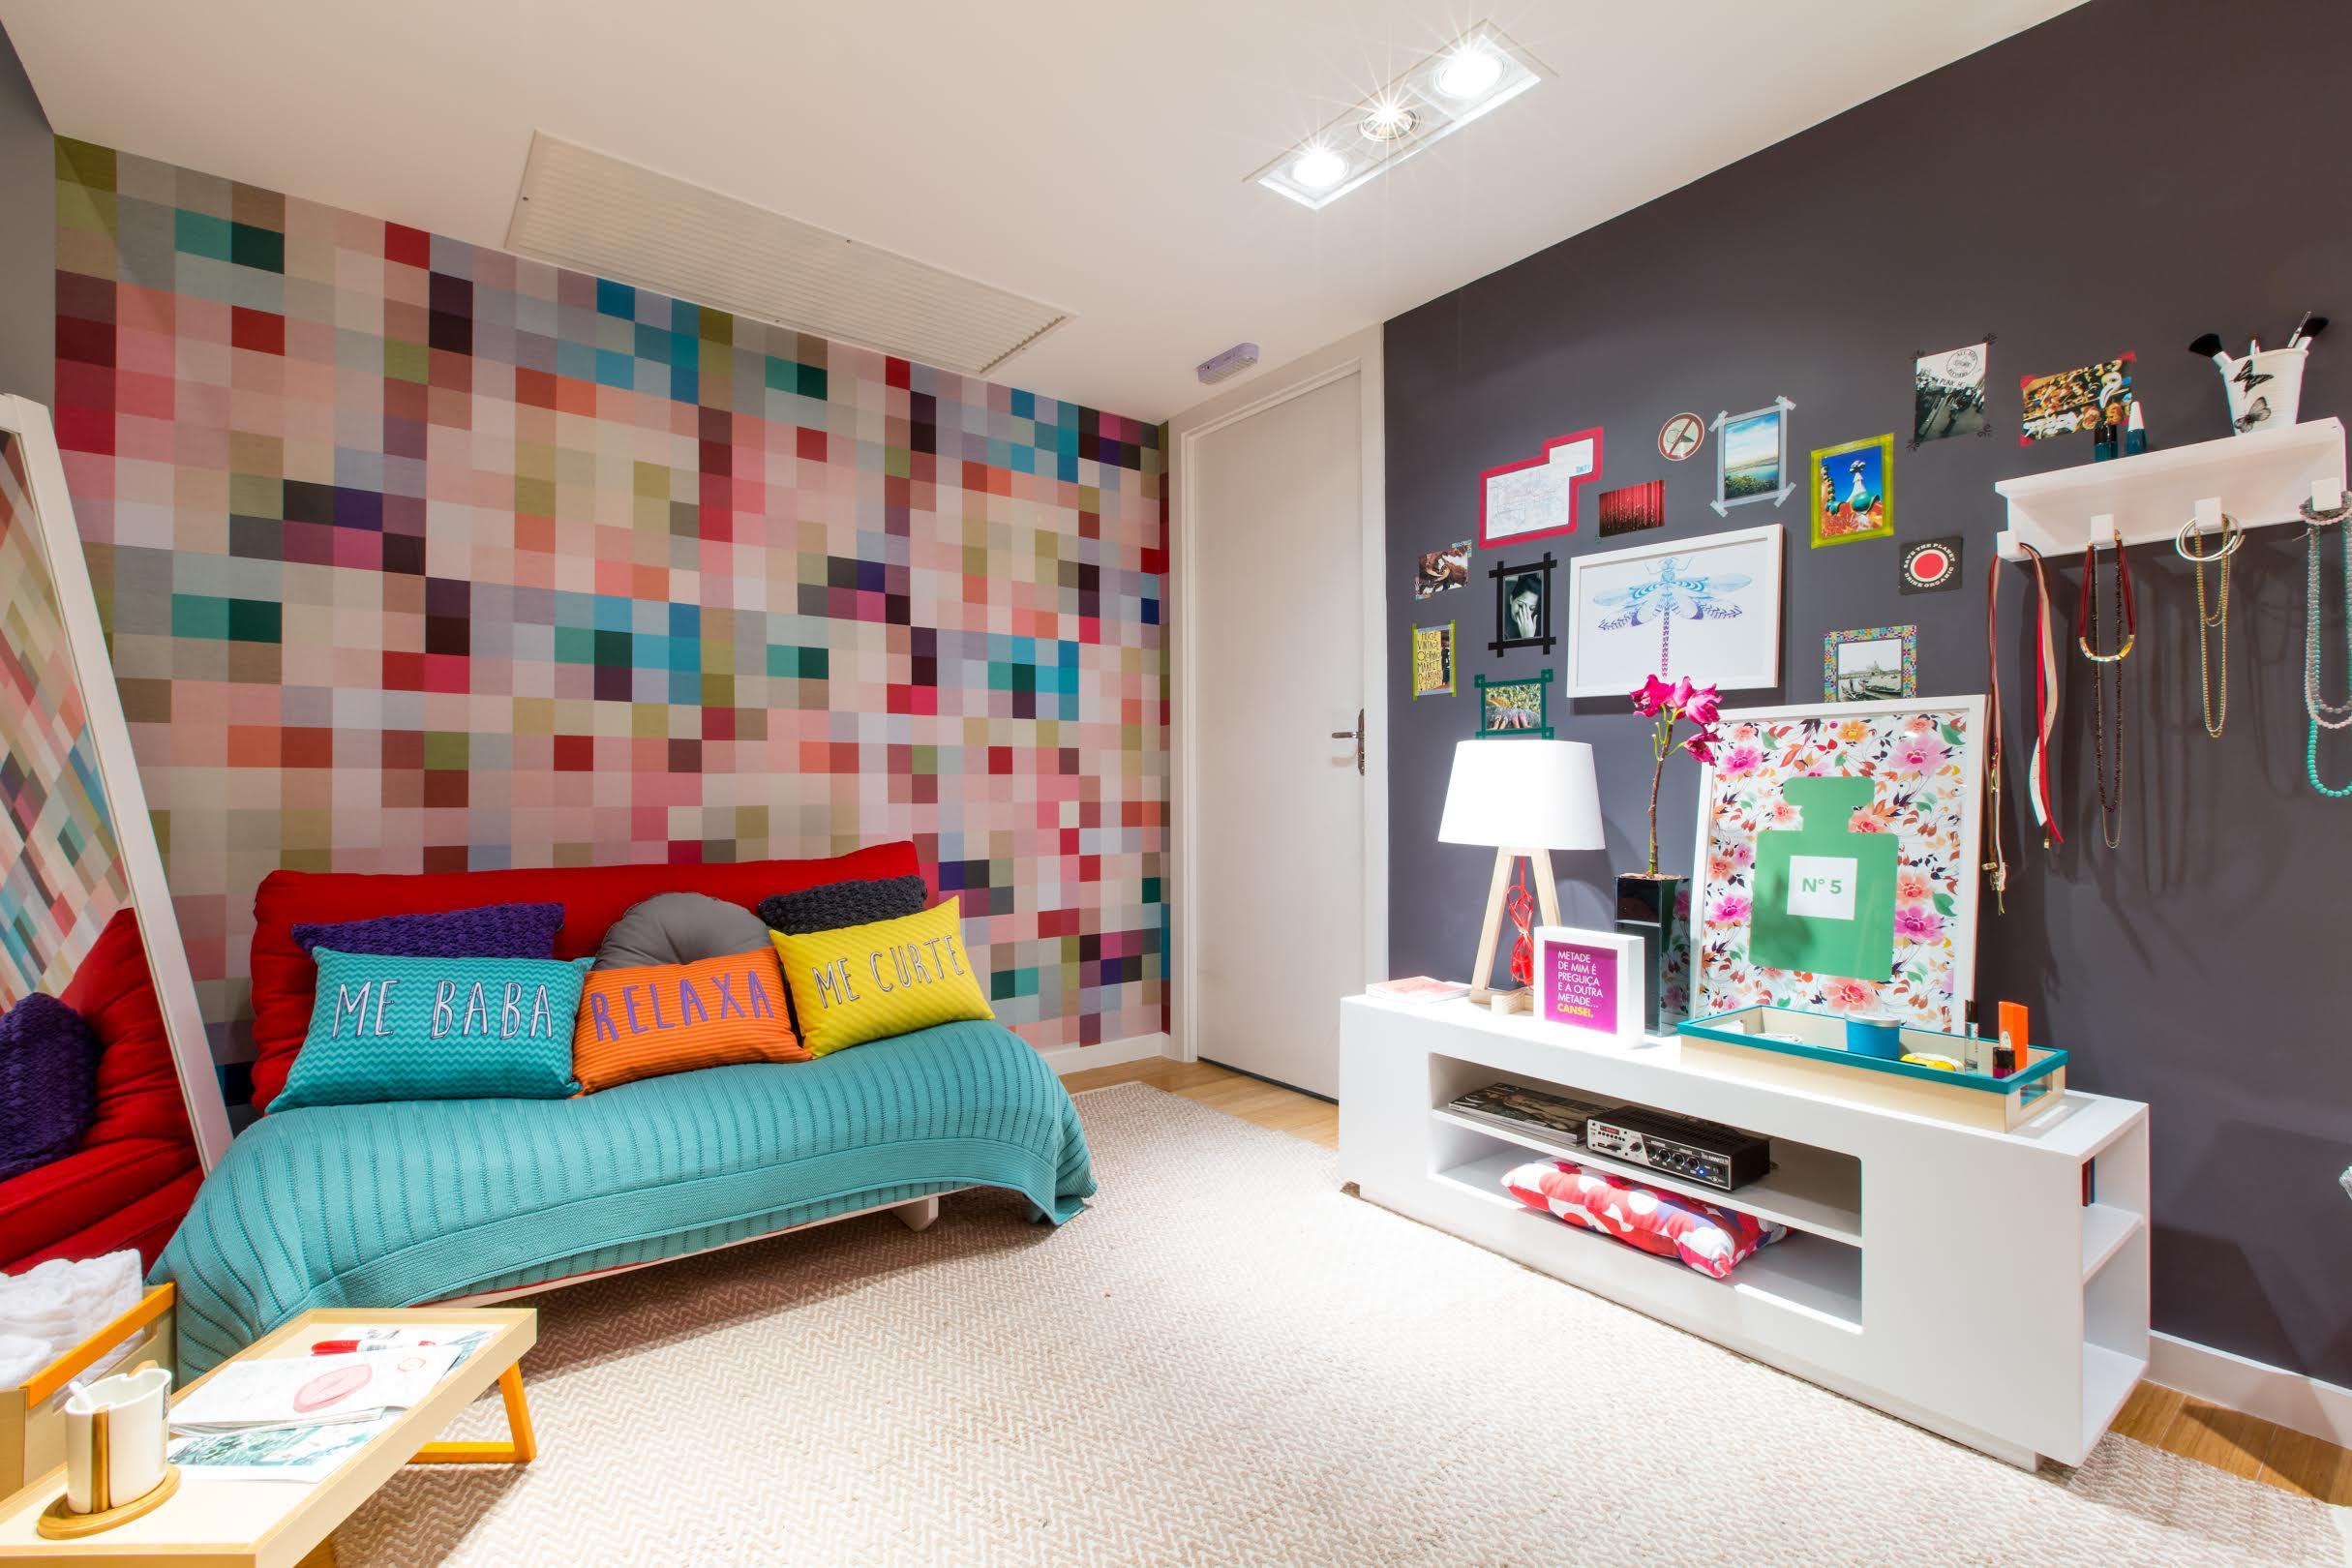 increibles ideas haran inspirarte decorar dormitorio